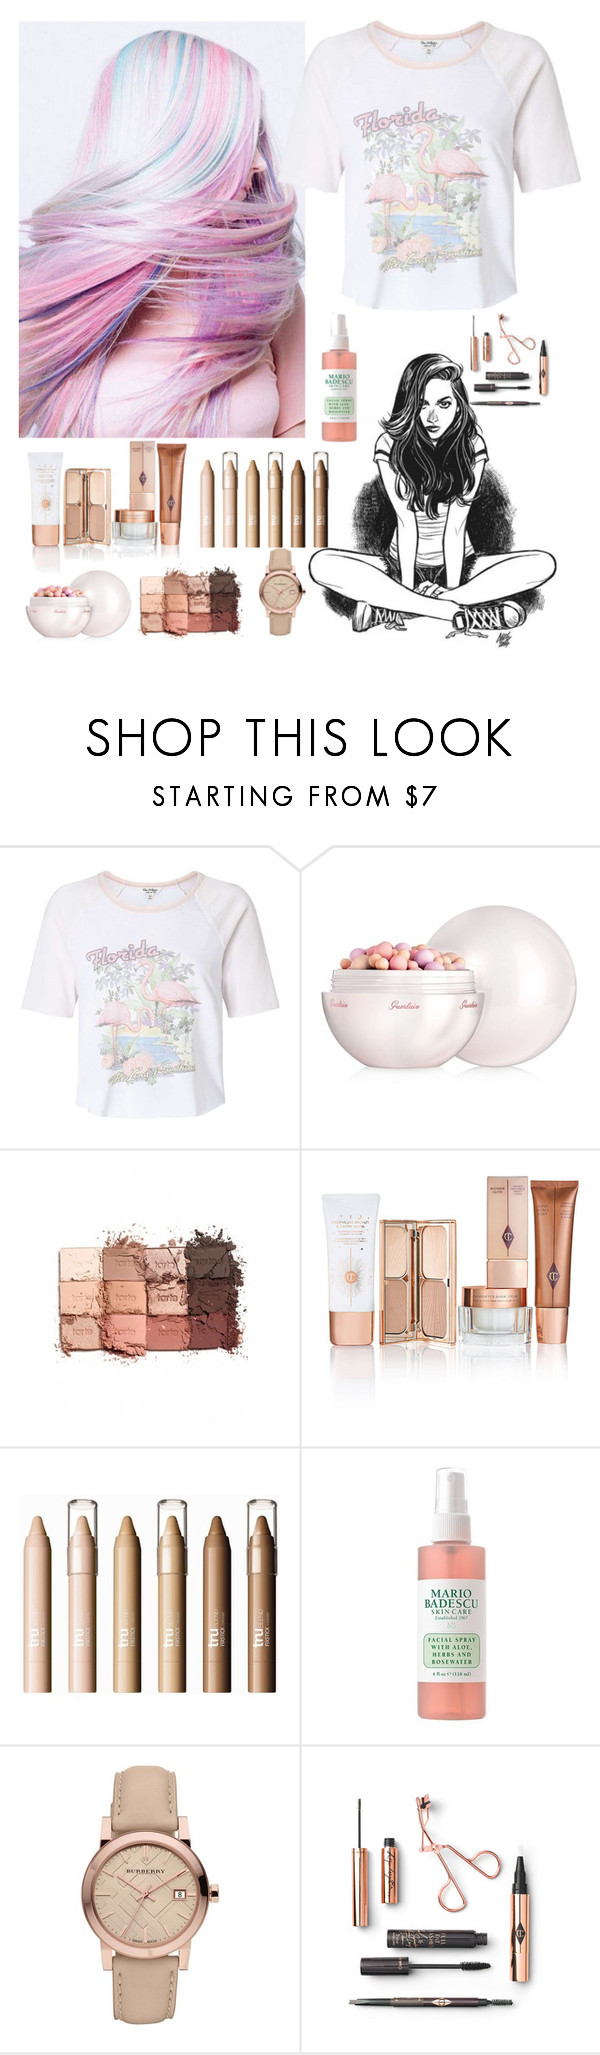 """Sun"" by oceanforthestars ❤ liked on Polyvore featuring Miss Selfridge, Guerlain, tarte and Burberry"